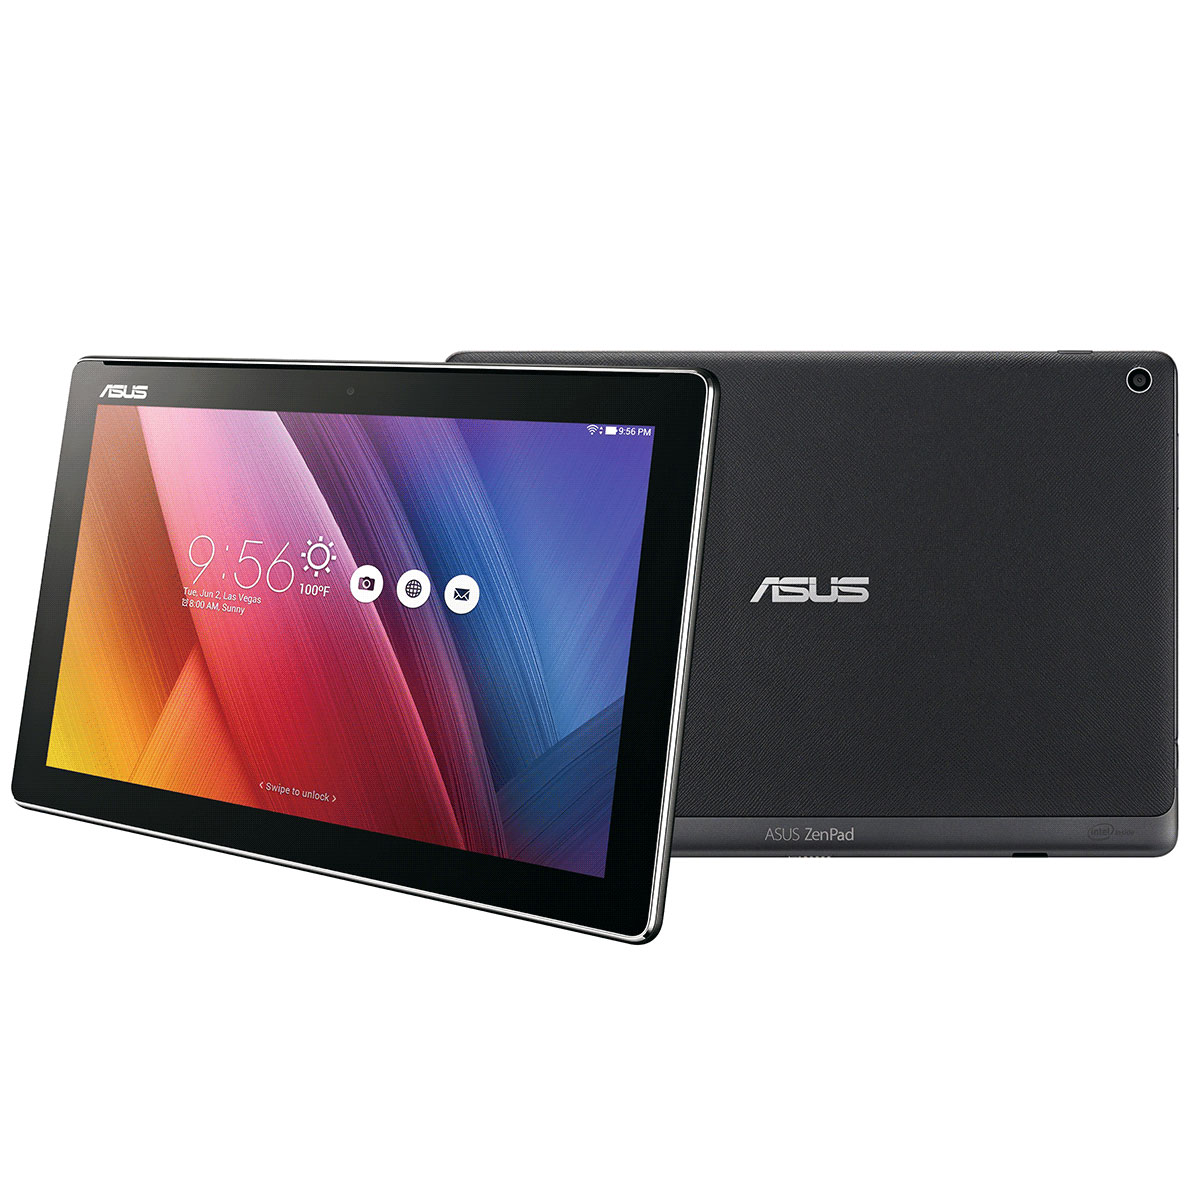 asus zenpad 10 z300c 1a057a noir tablette tactile asus sur ldlc. Black Bedroom Furniture Sets. Home Design Ideas